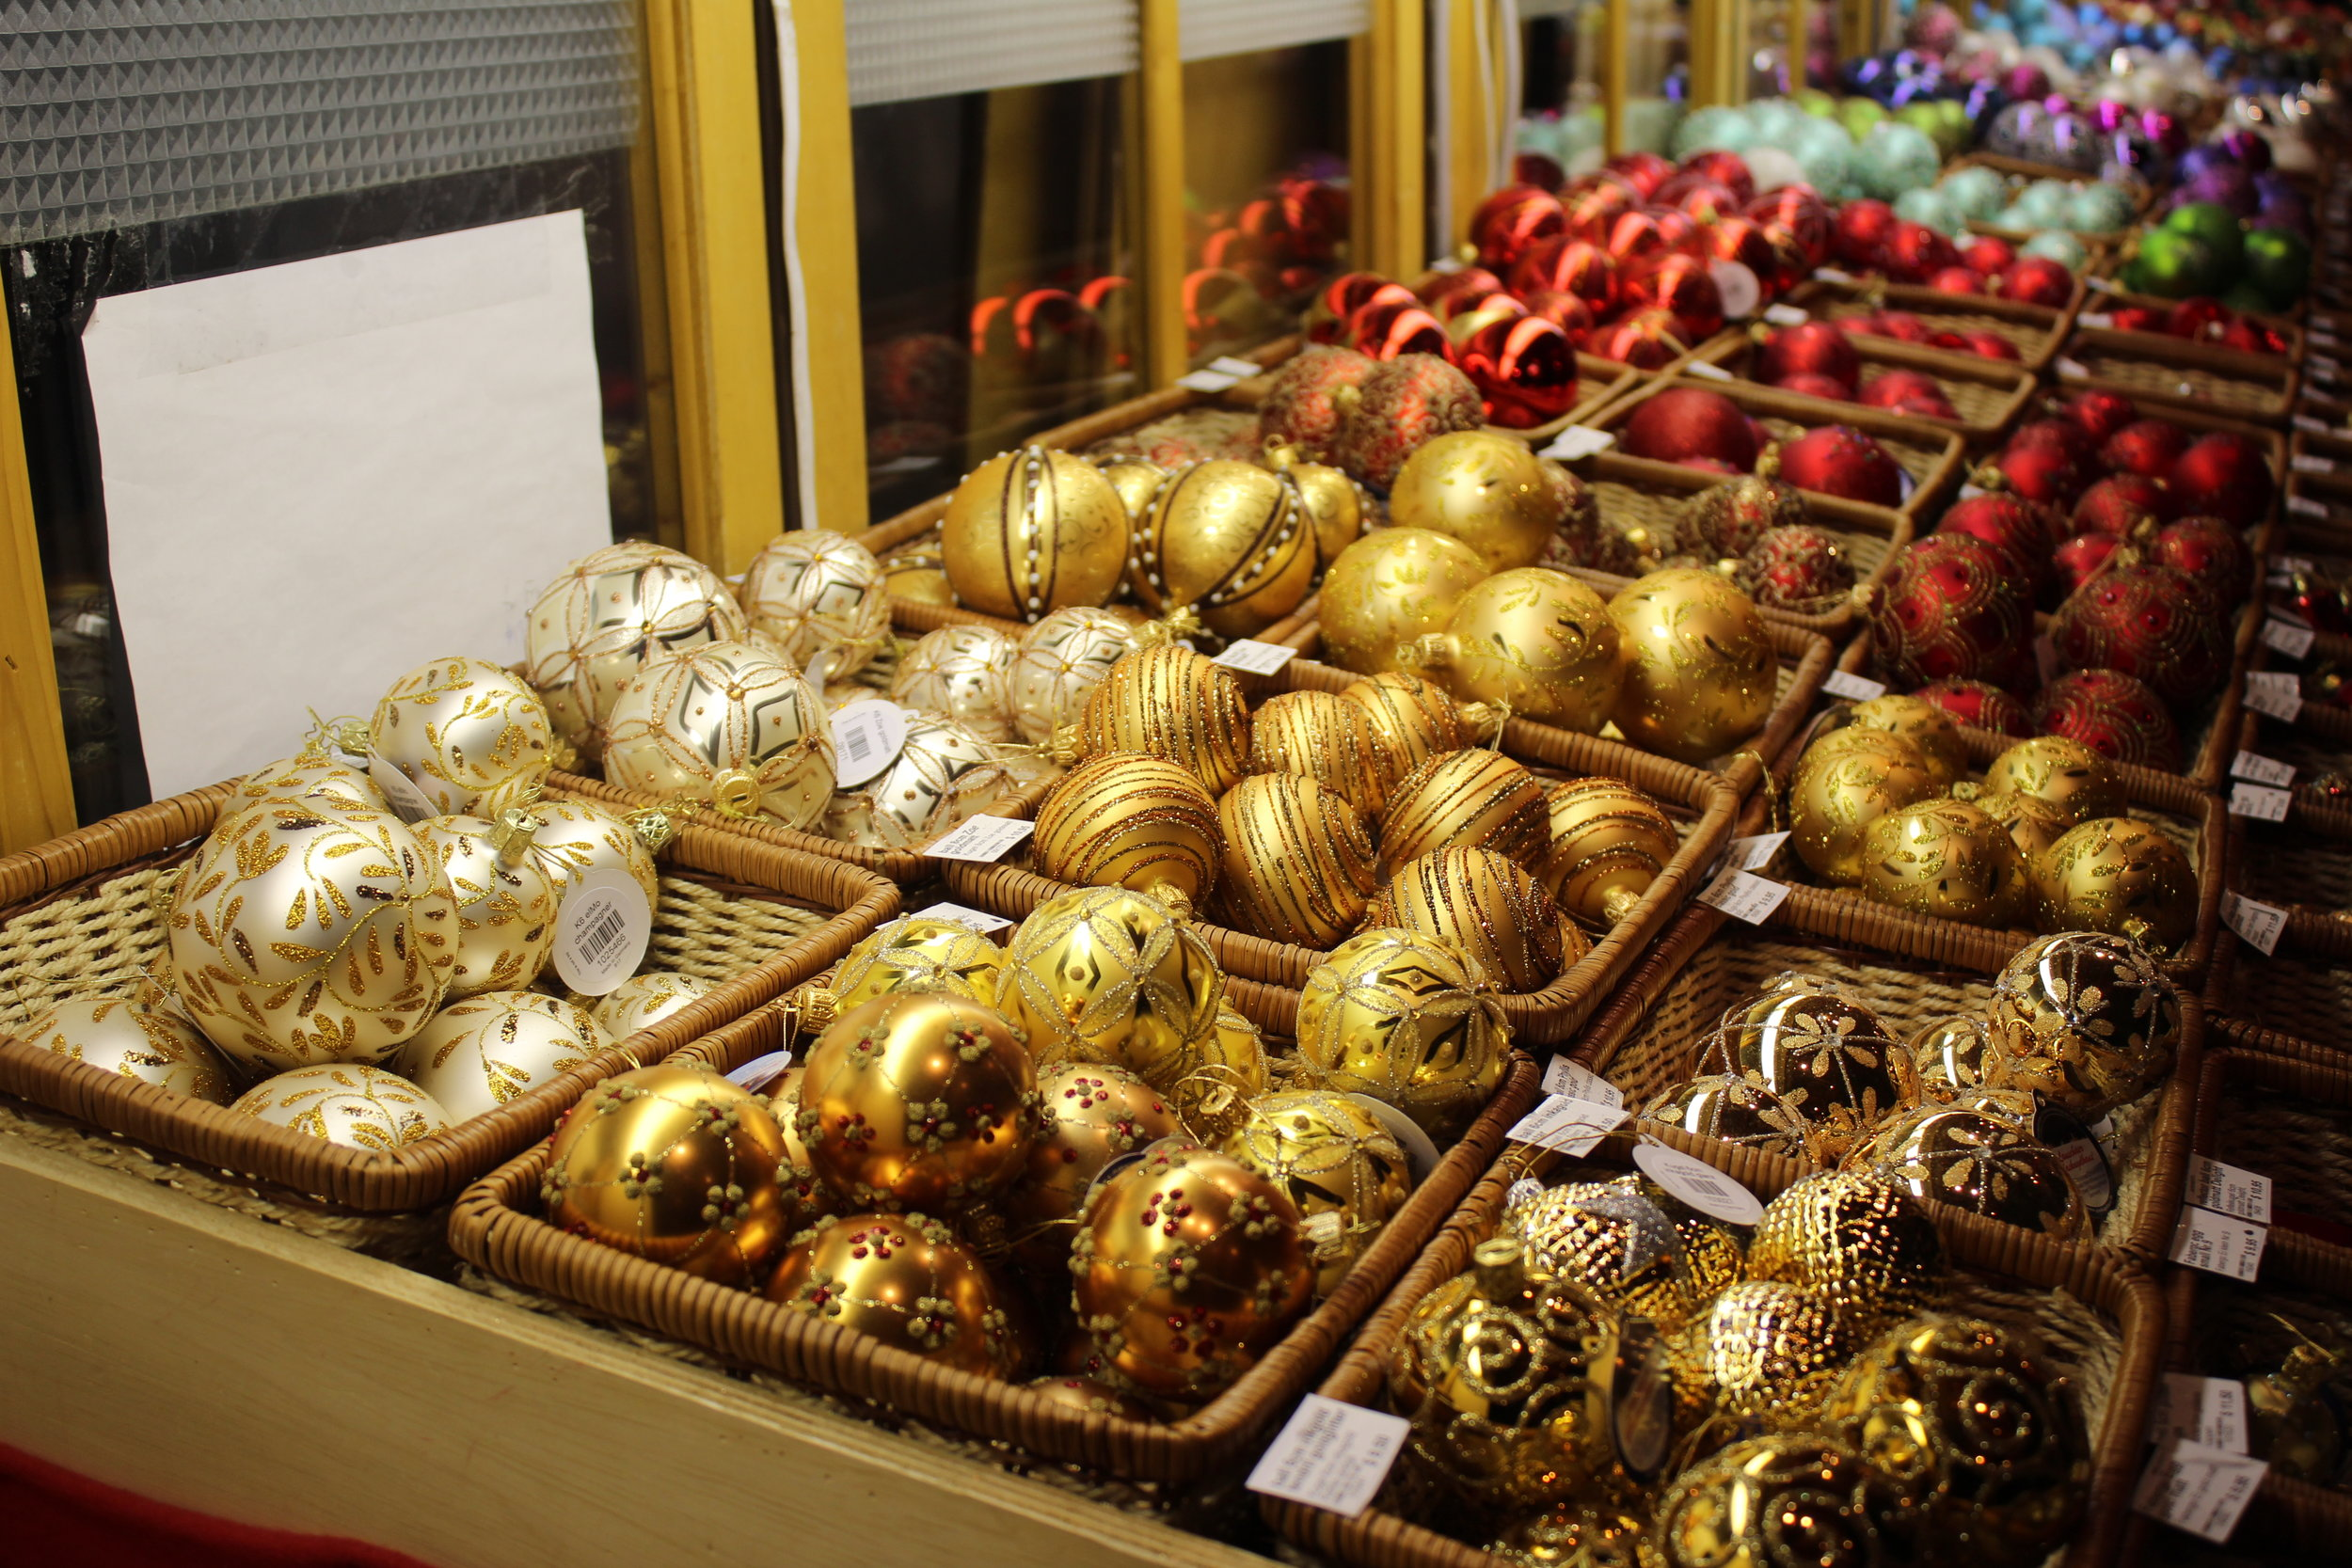 Plenty of ornaments to choose from!